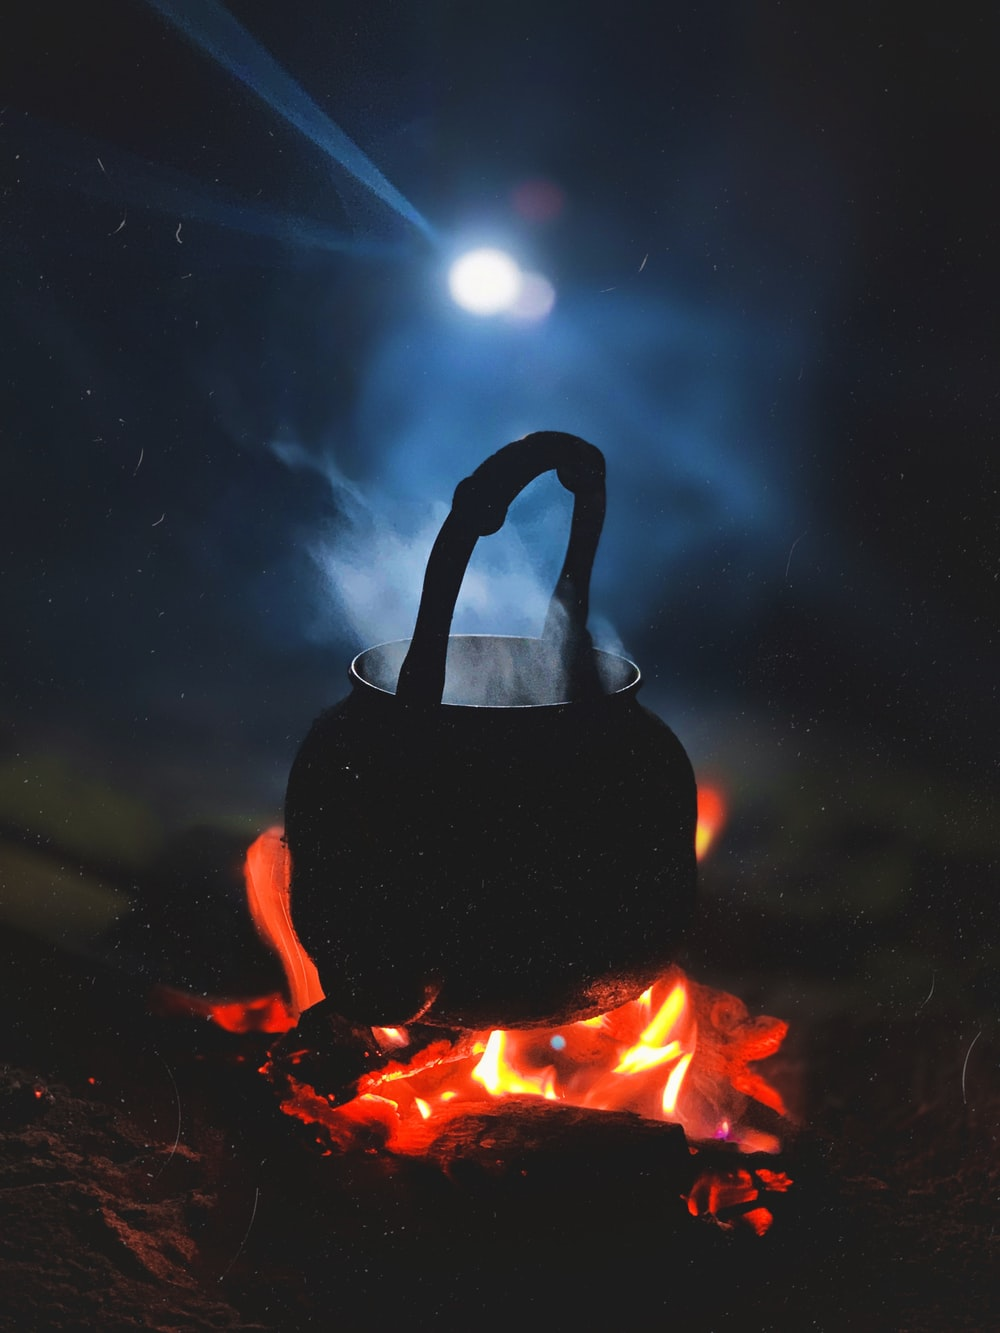 person in black hoodie standing on fire during nighttime